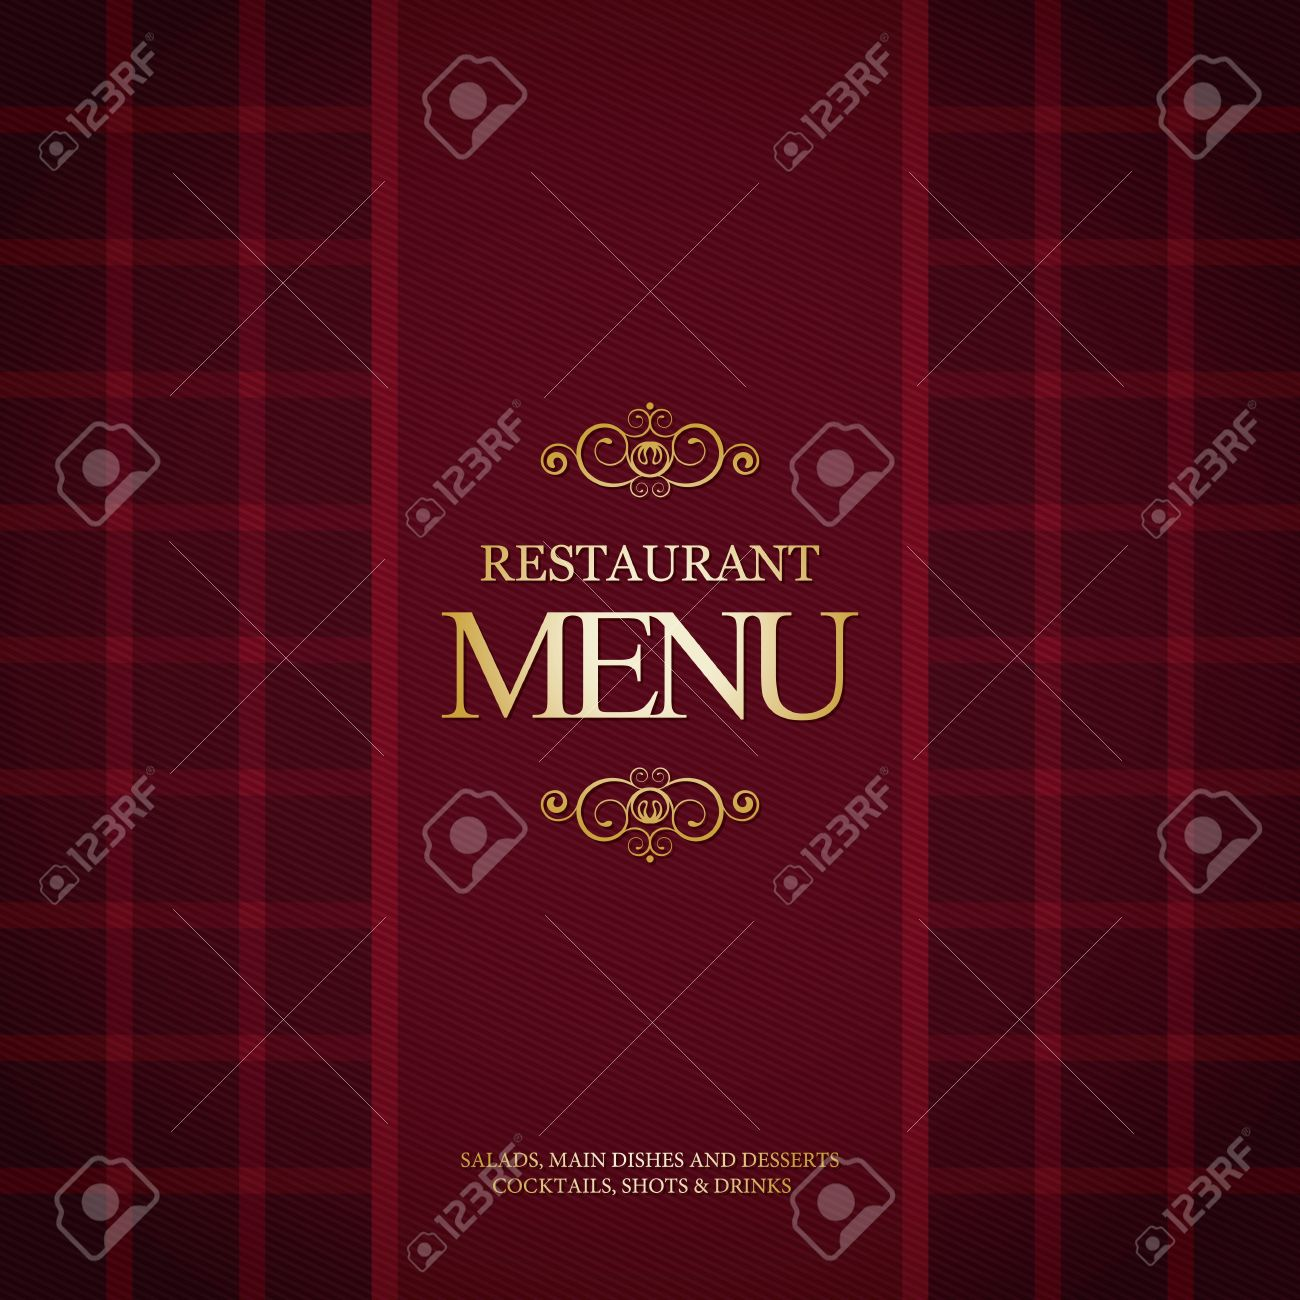 restaurant menu design, with trendy plaid background royalty free